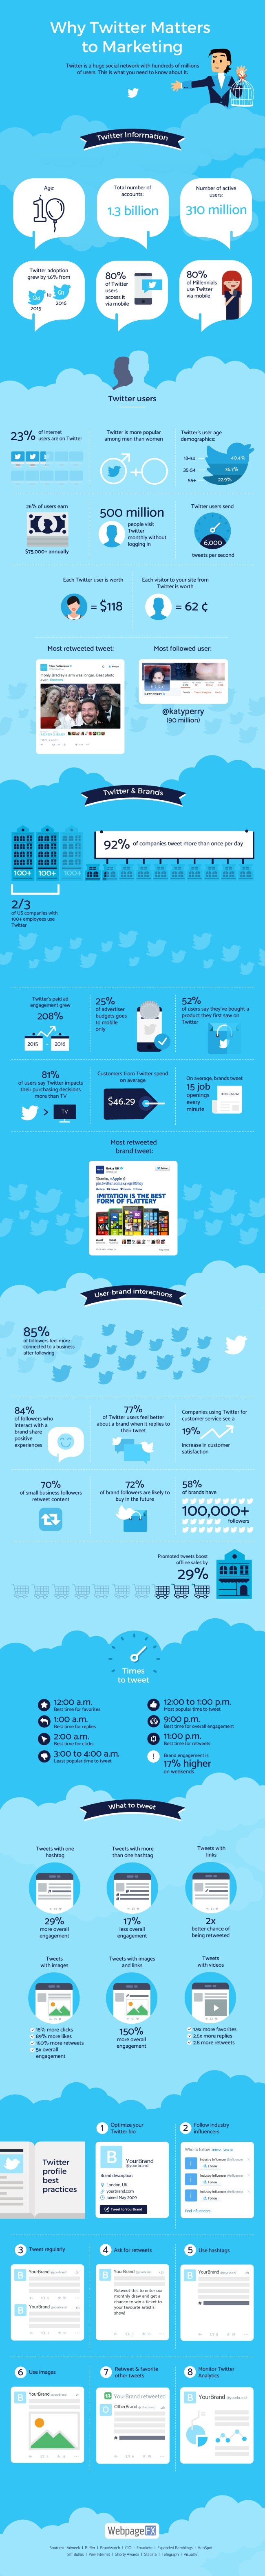 WhyTwitterMattersToMarketingInfographic